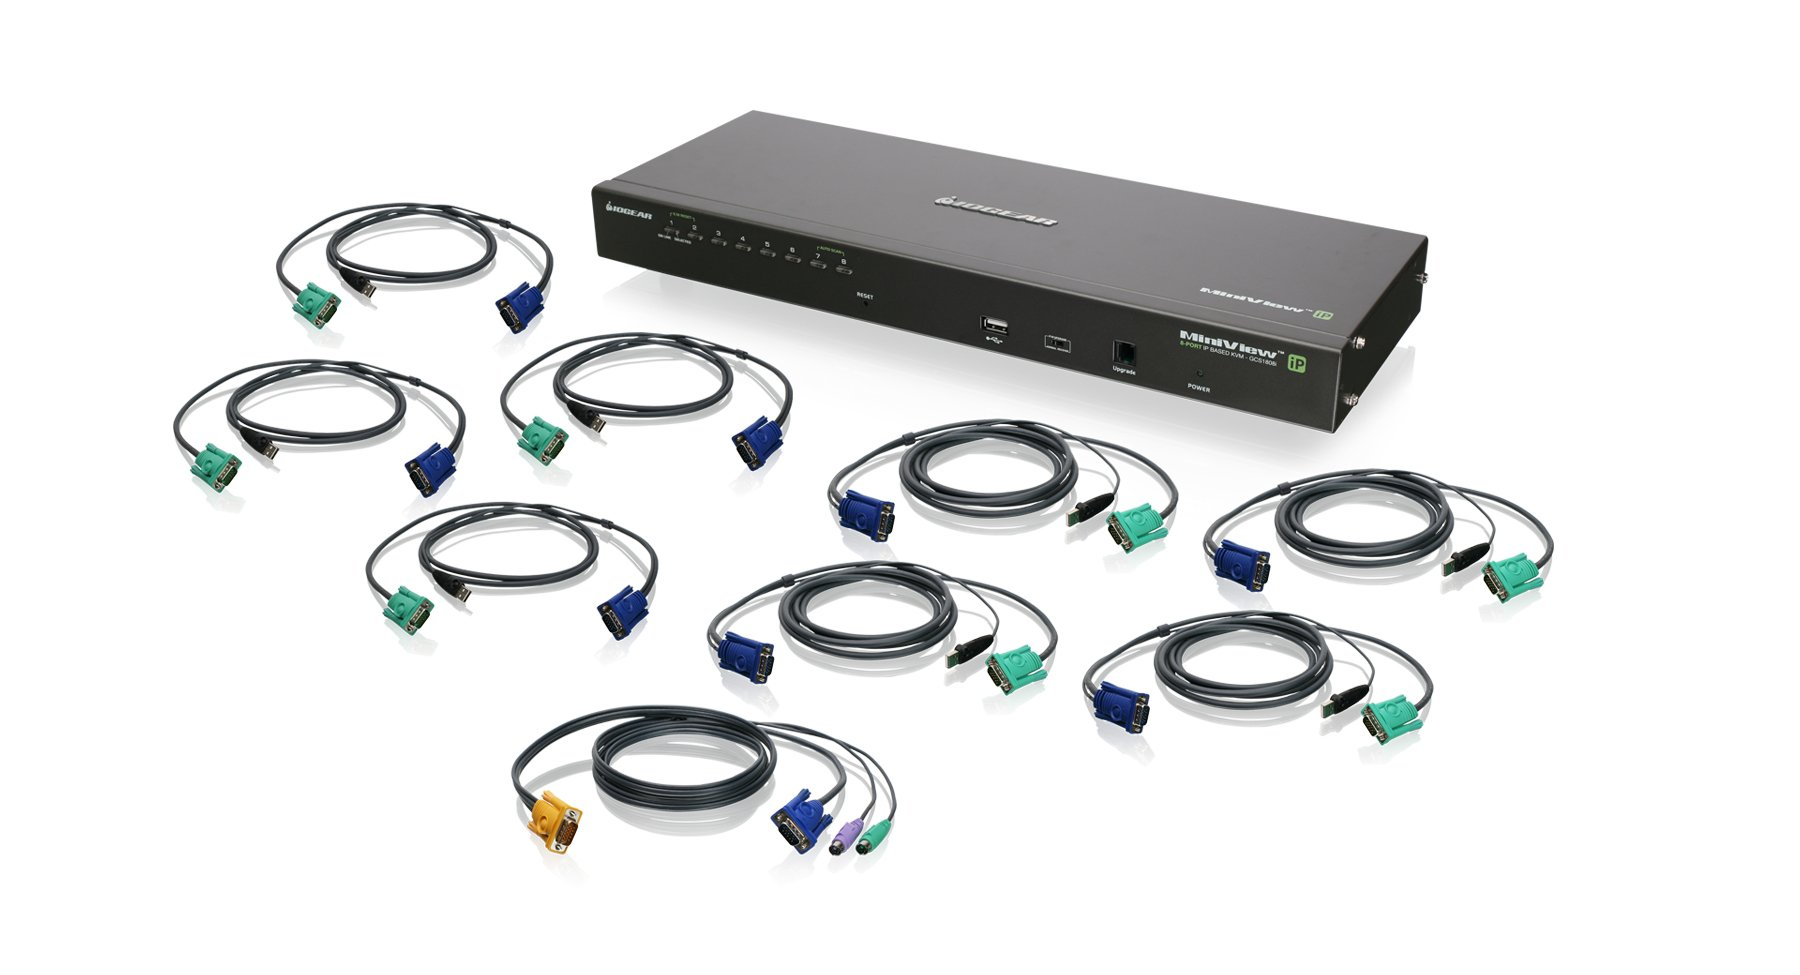 IOGEAR 8-Port IP Based KVM Kit with USB KVM Cables, GCS1808iKITU